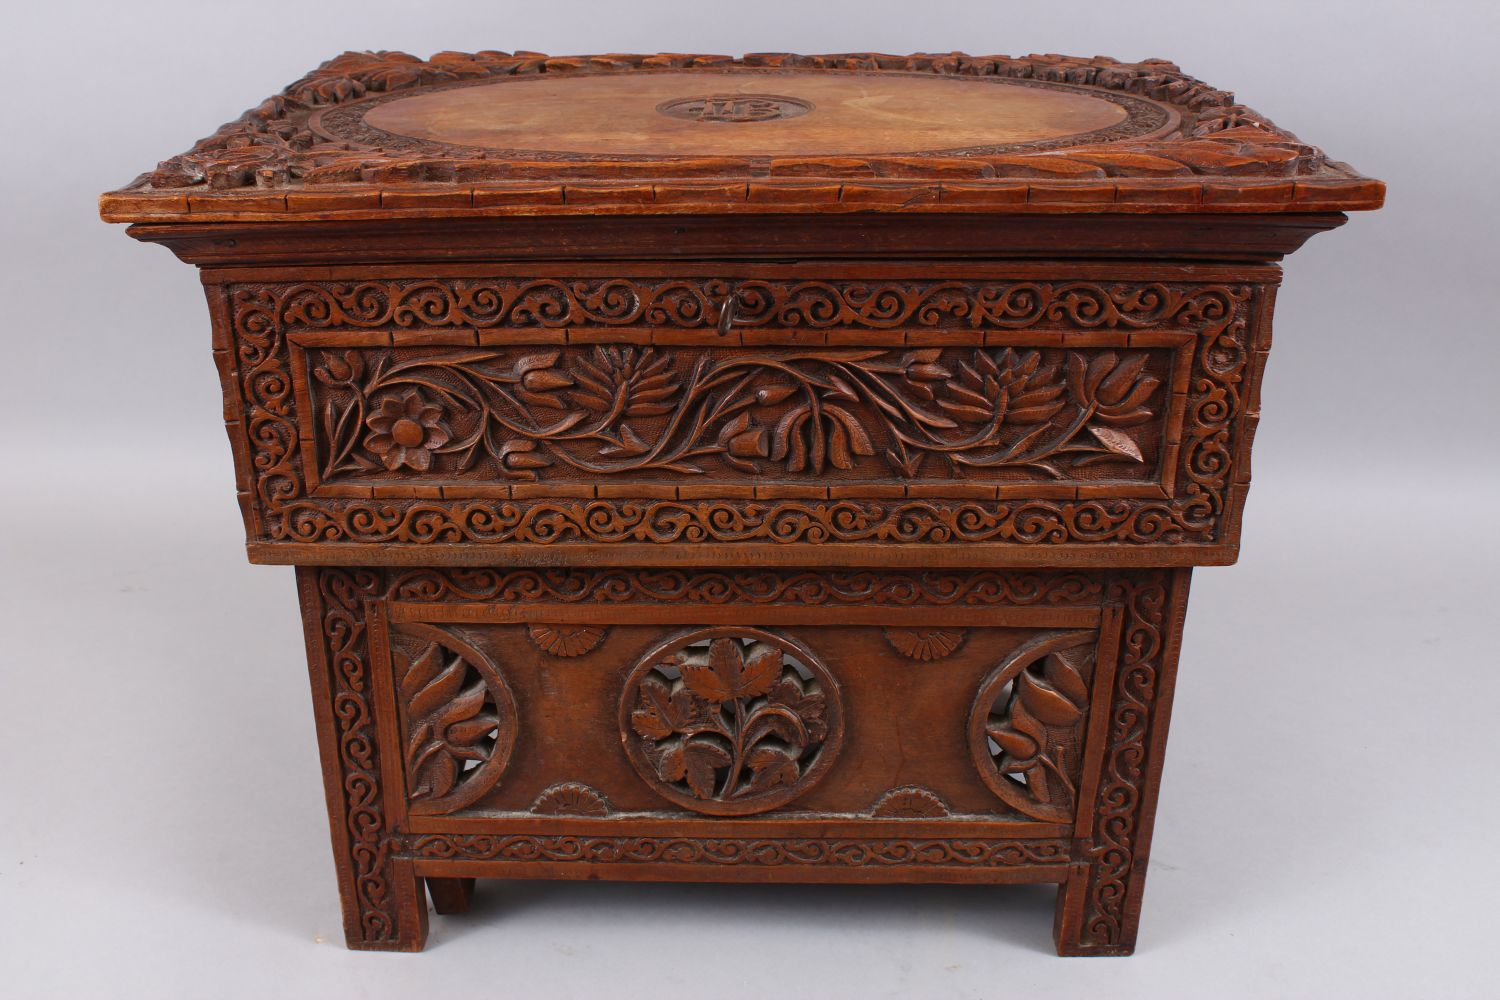 Lot 54 - AN 18TH / 19TH CENTURY INDIAN KASHMIR FOLDING WOOD MERCHANTS DESK, carved in deep relief to depict